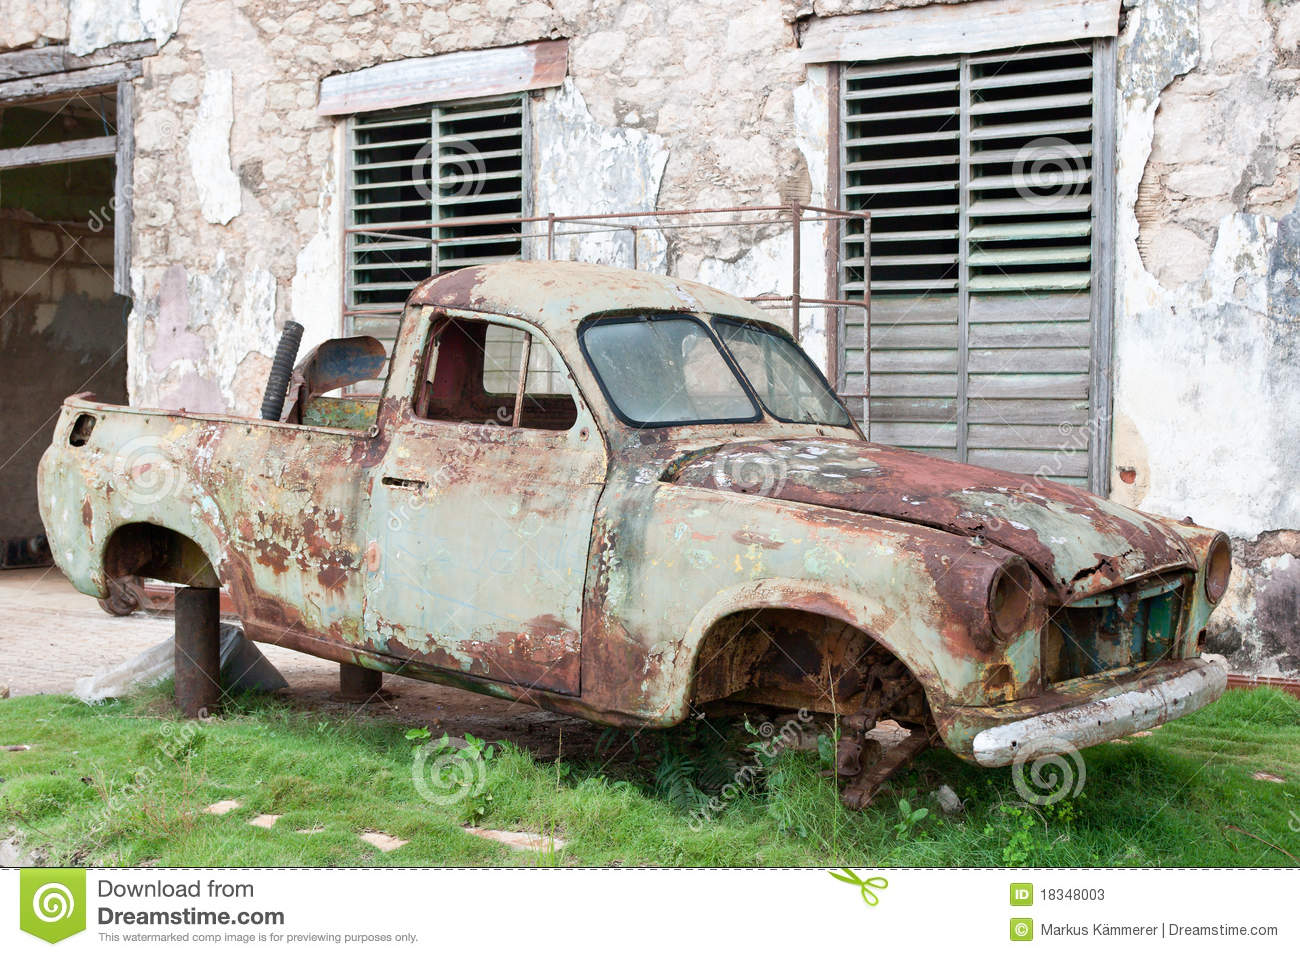 Pictures of old wrecked cars - All Pictures top